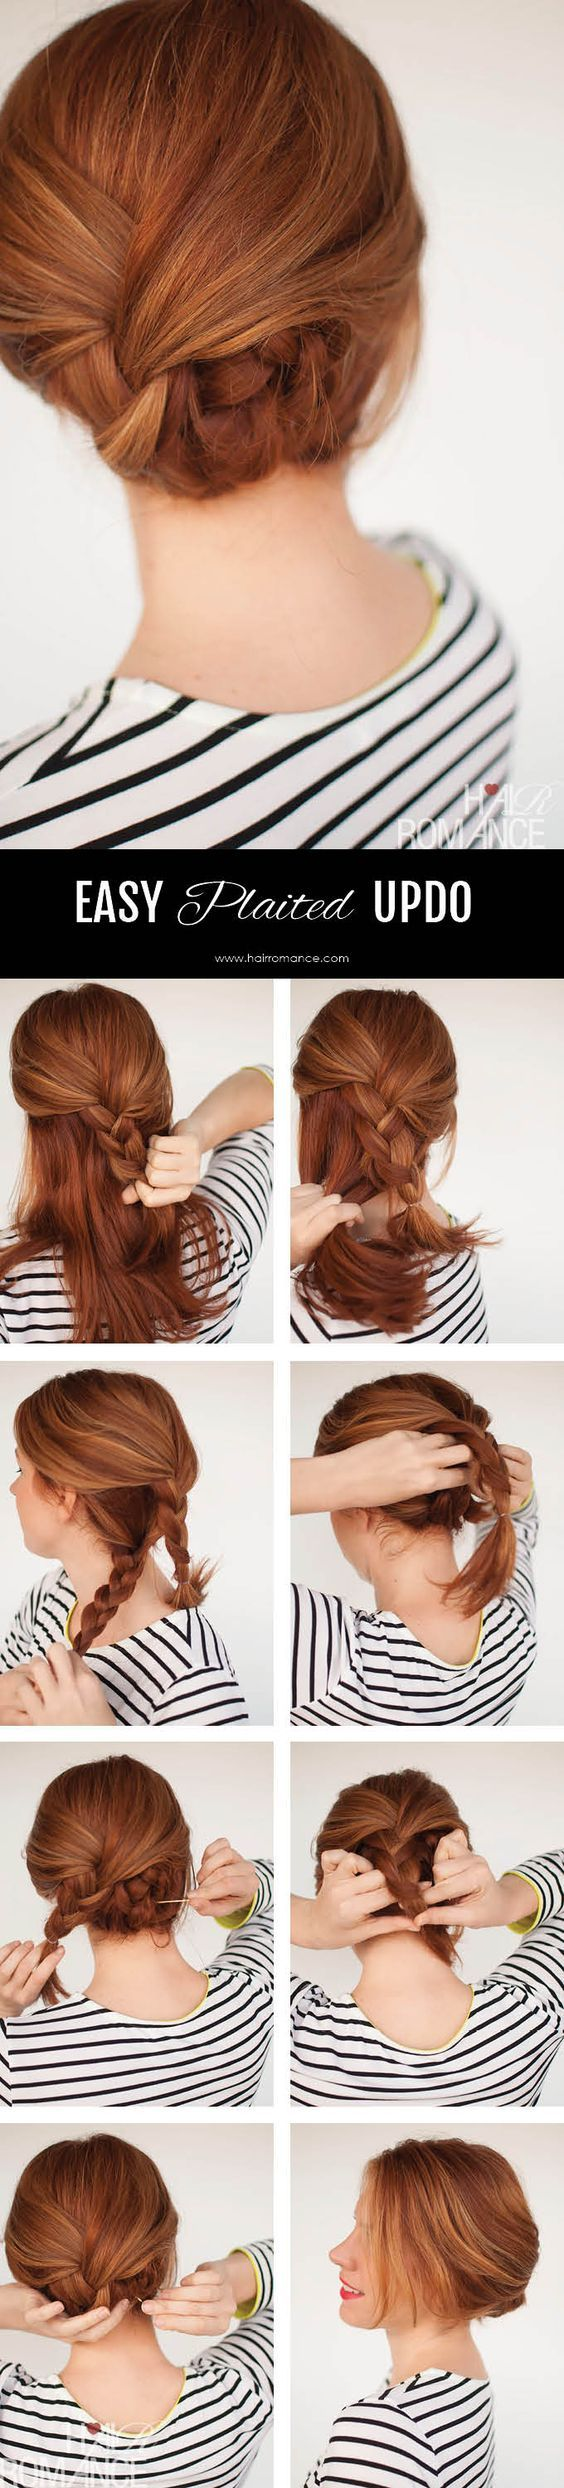 Easy updo braid lazy hairstyle hair pinterest hair hair